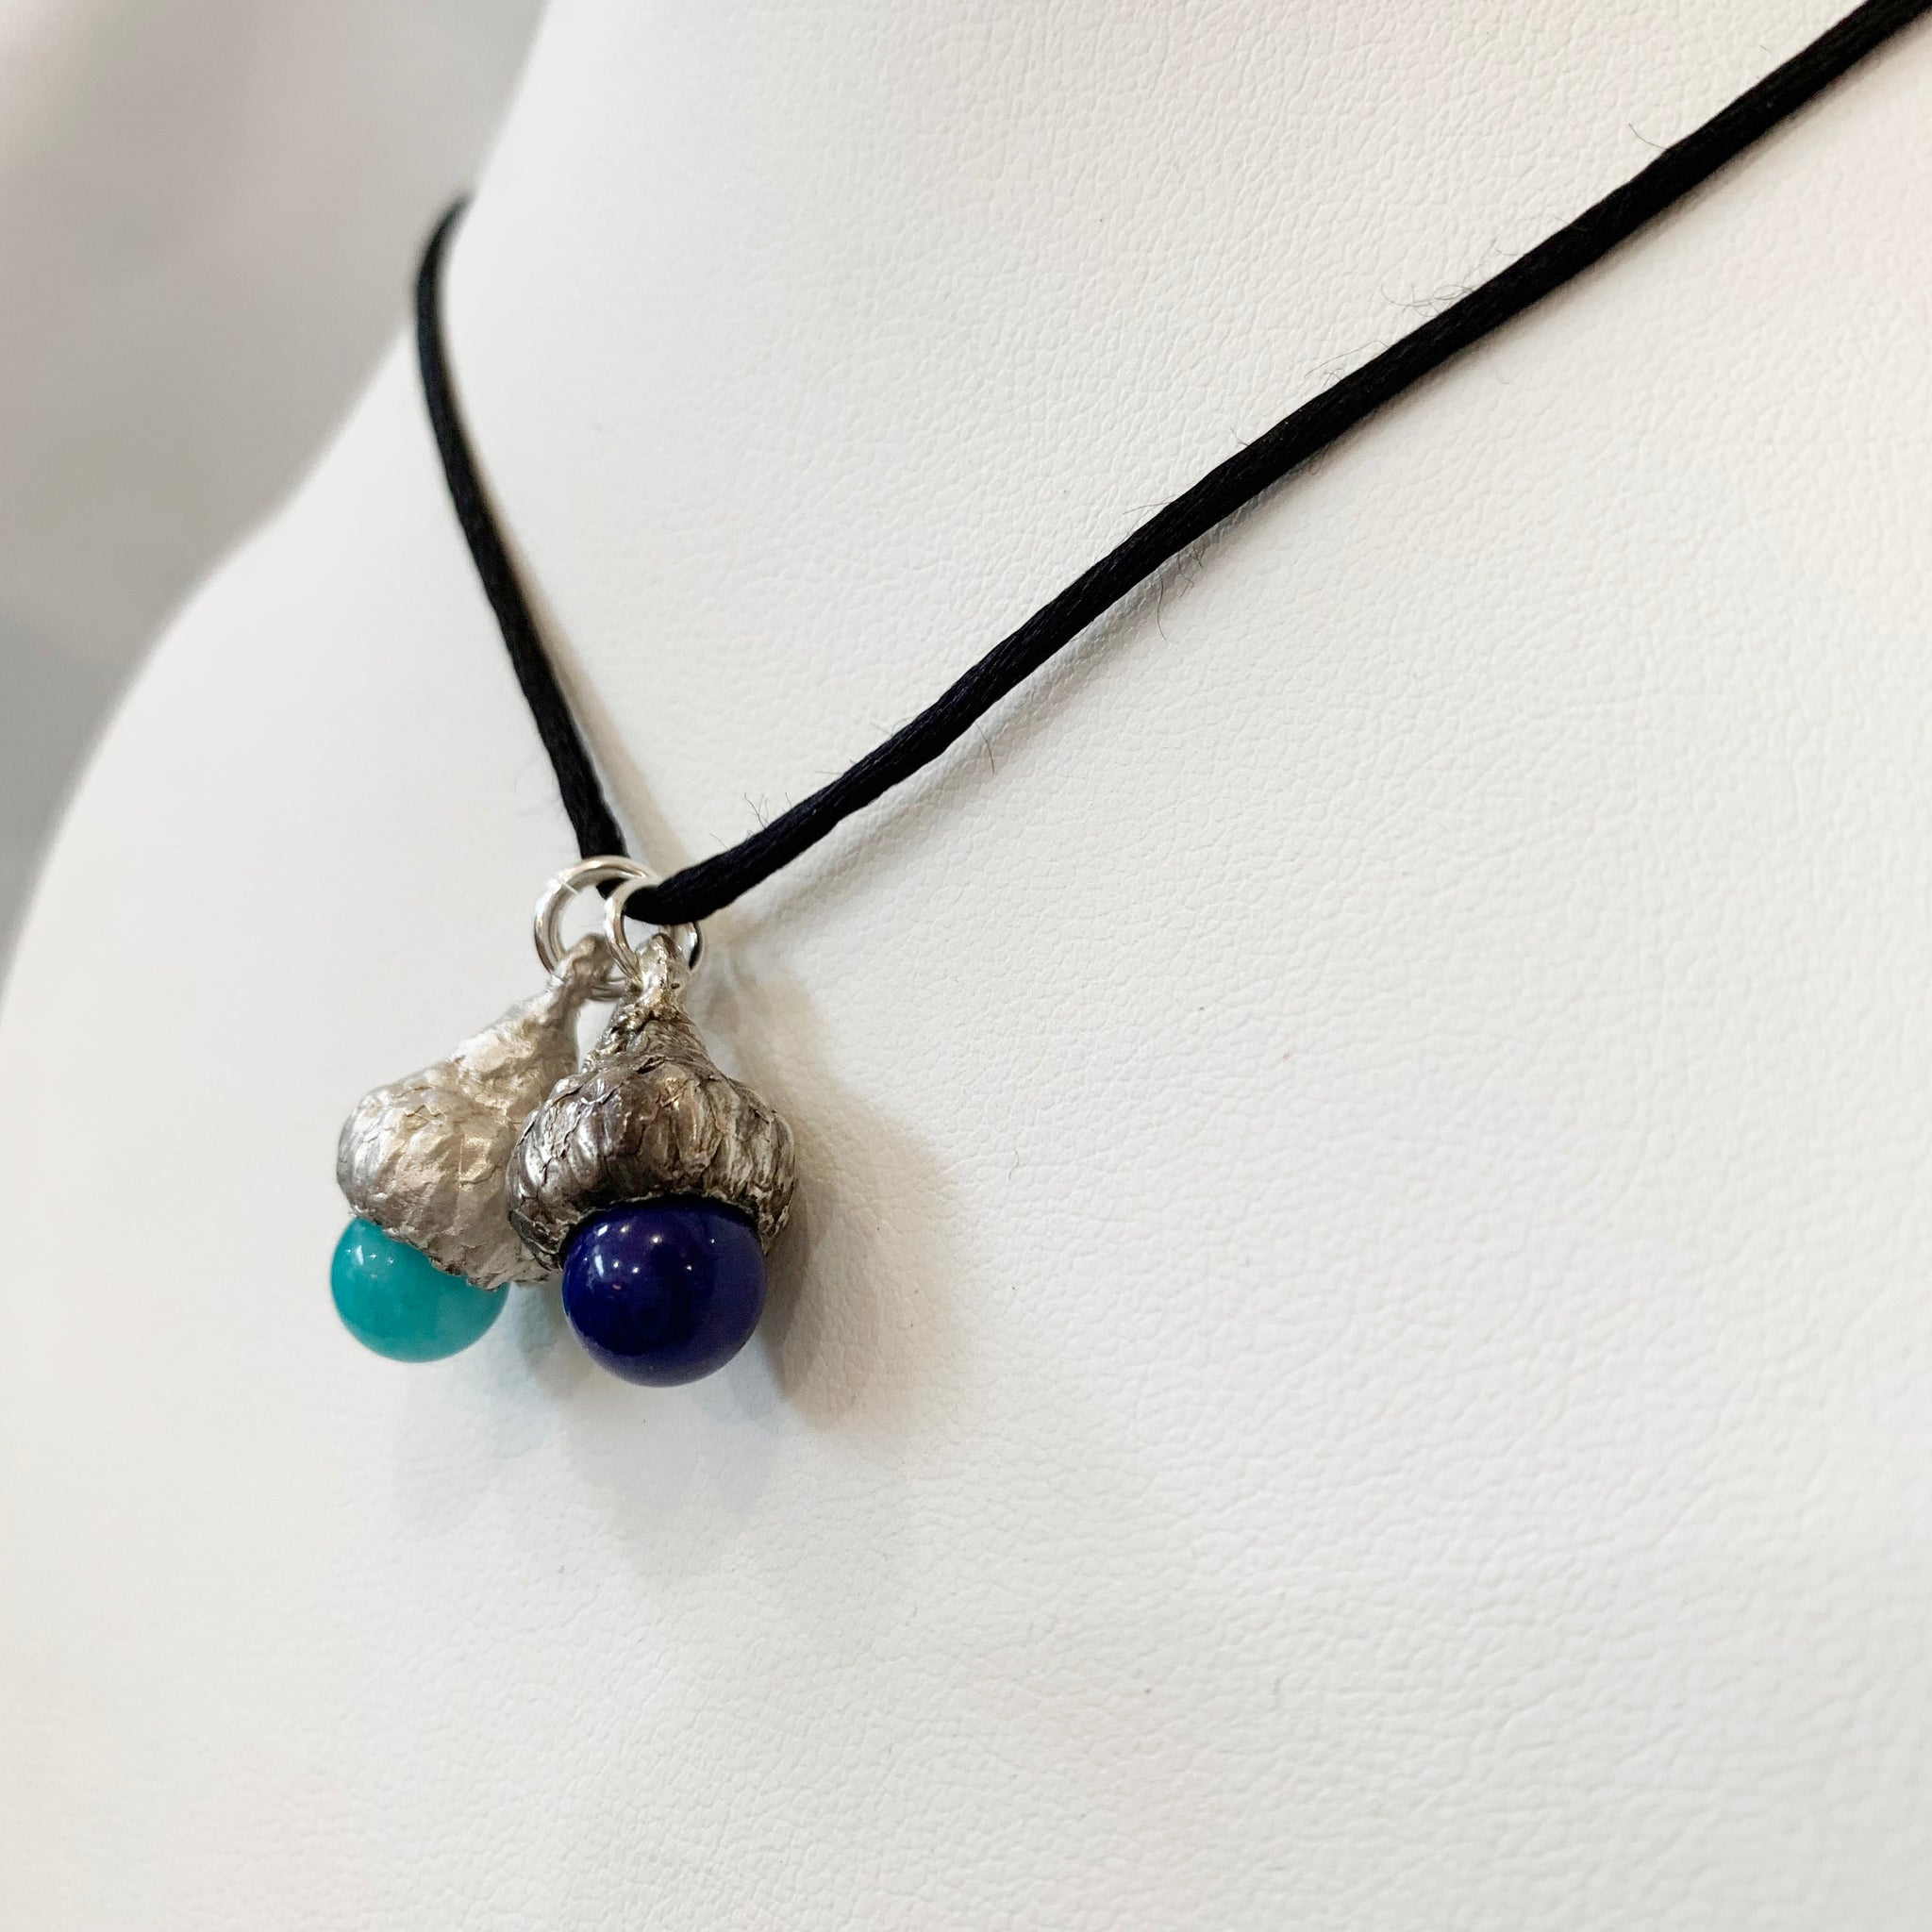 Silver Acorn Pendant with Stone